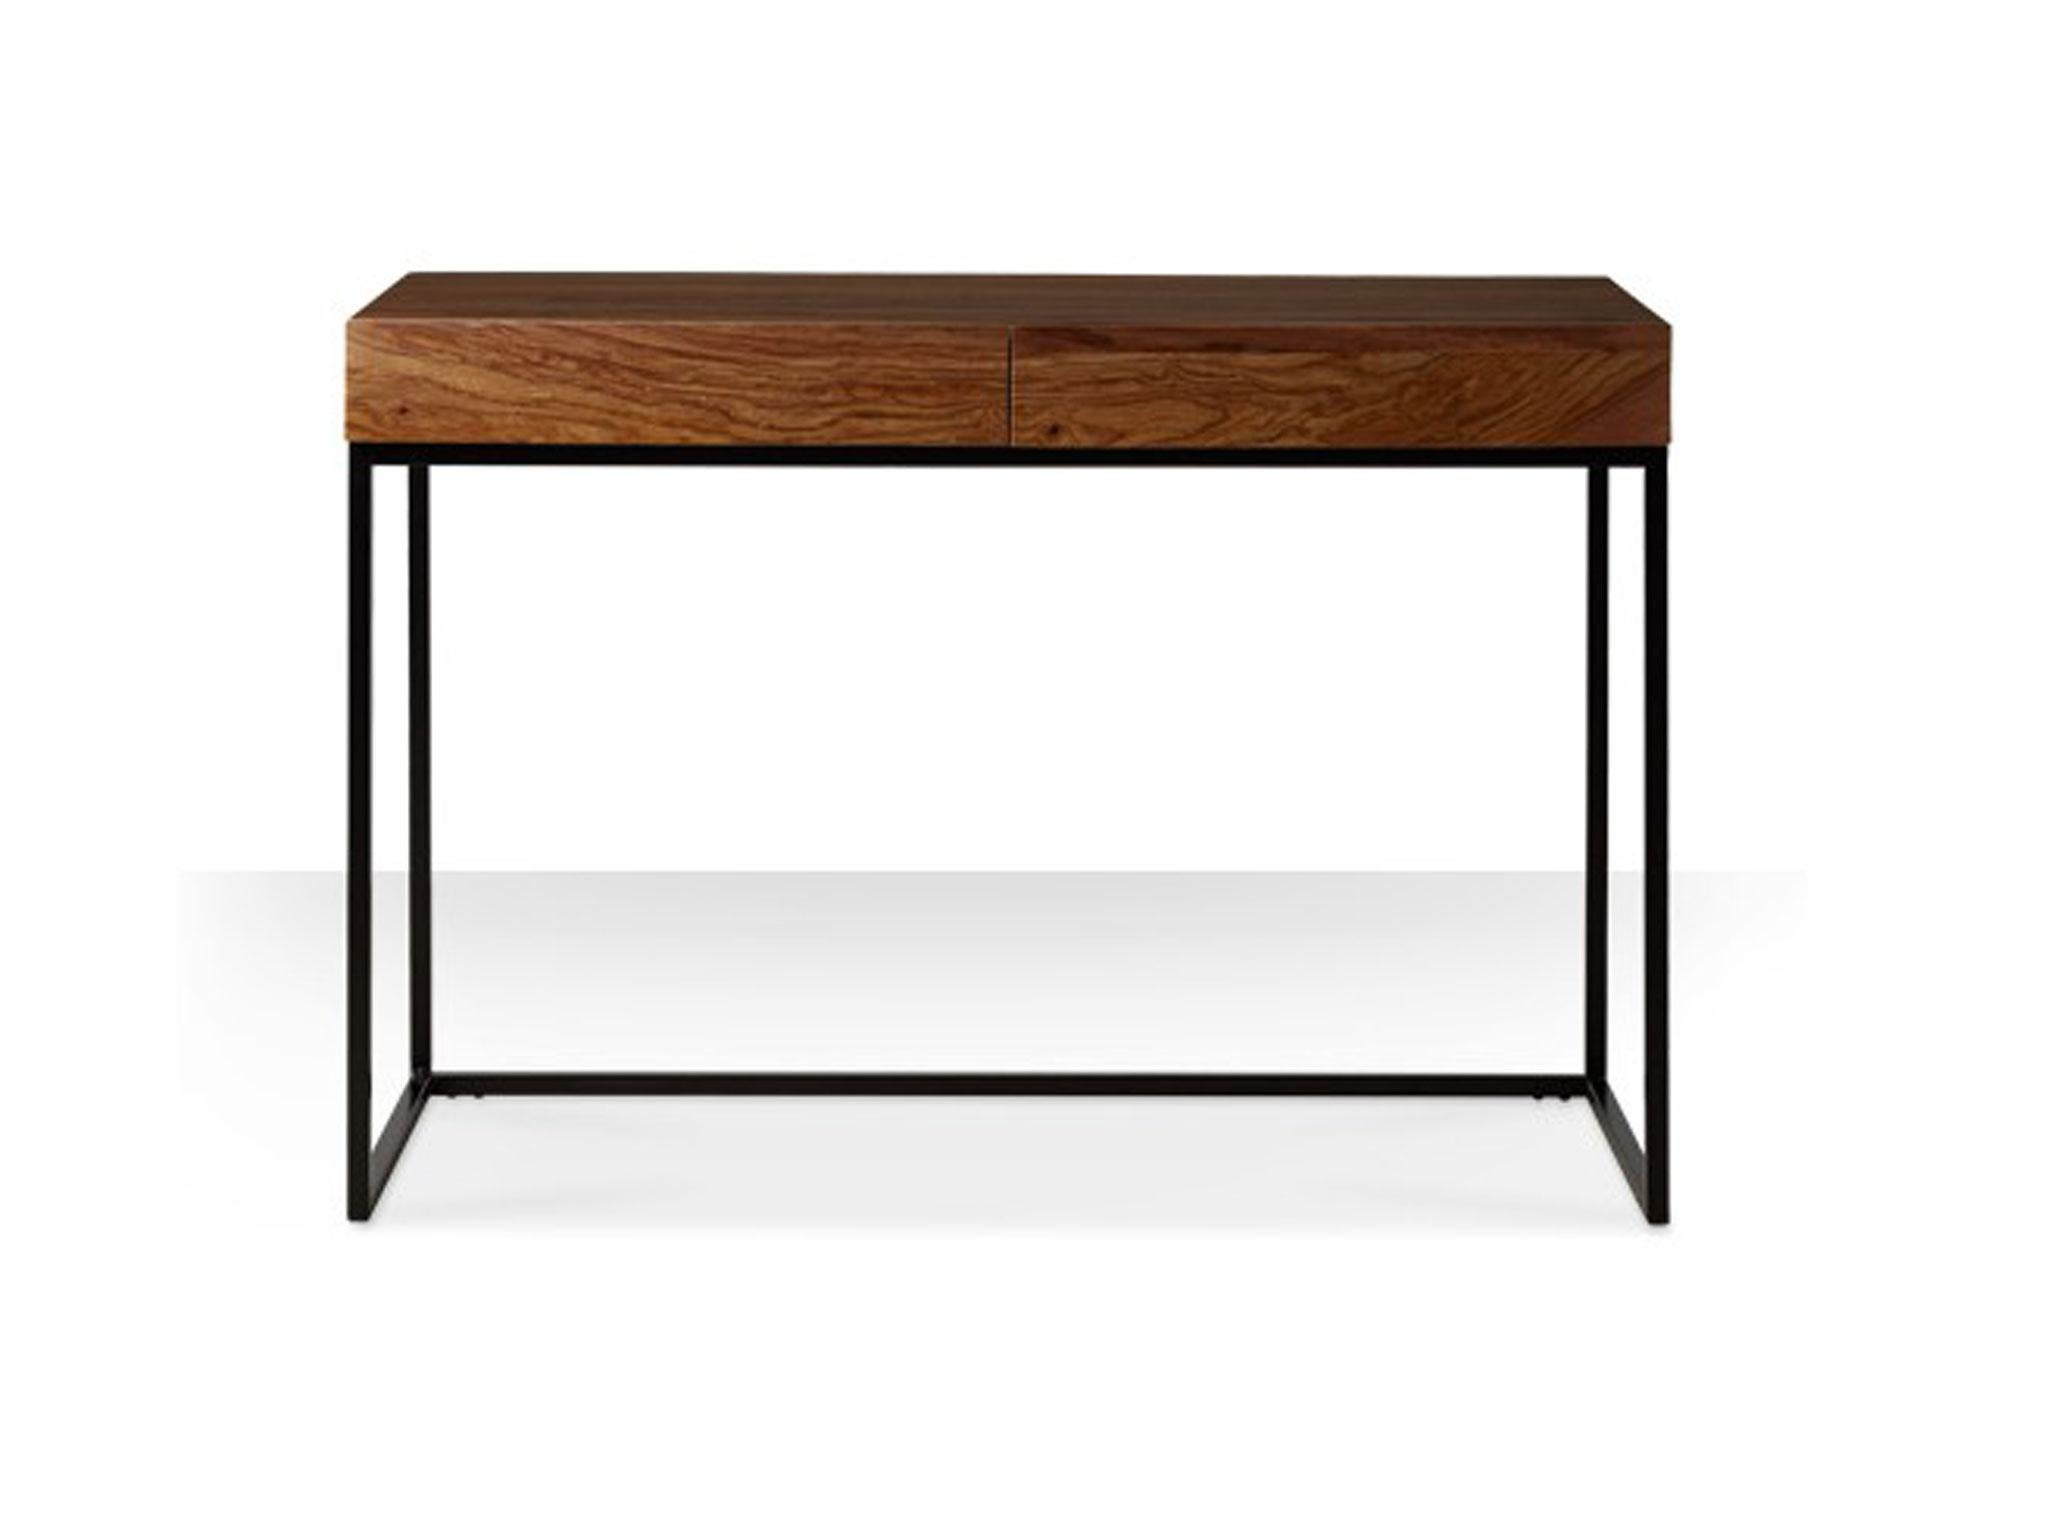 home office desk worktops. Made In India, The Brody Desk Combines A Luxurious Rosewood Top With Black Powder-coated Iron Frame. Its Simple Rectangular Style Lets Materials Do Home Office Worktops